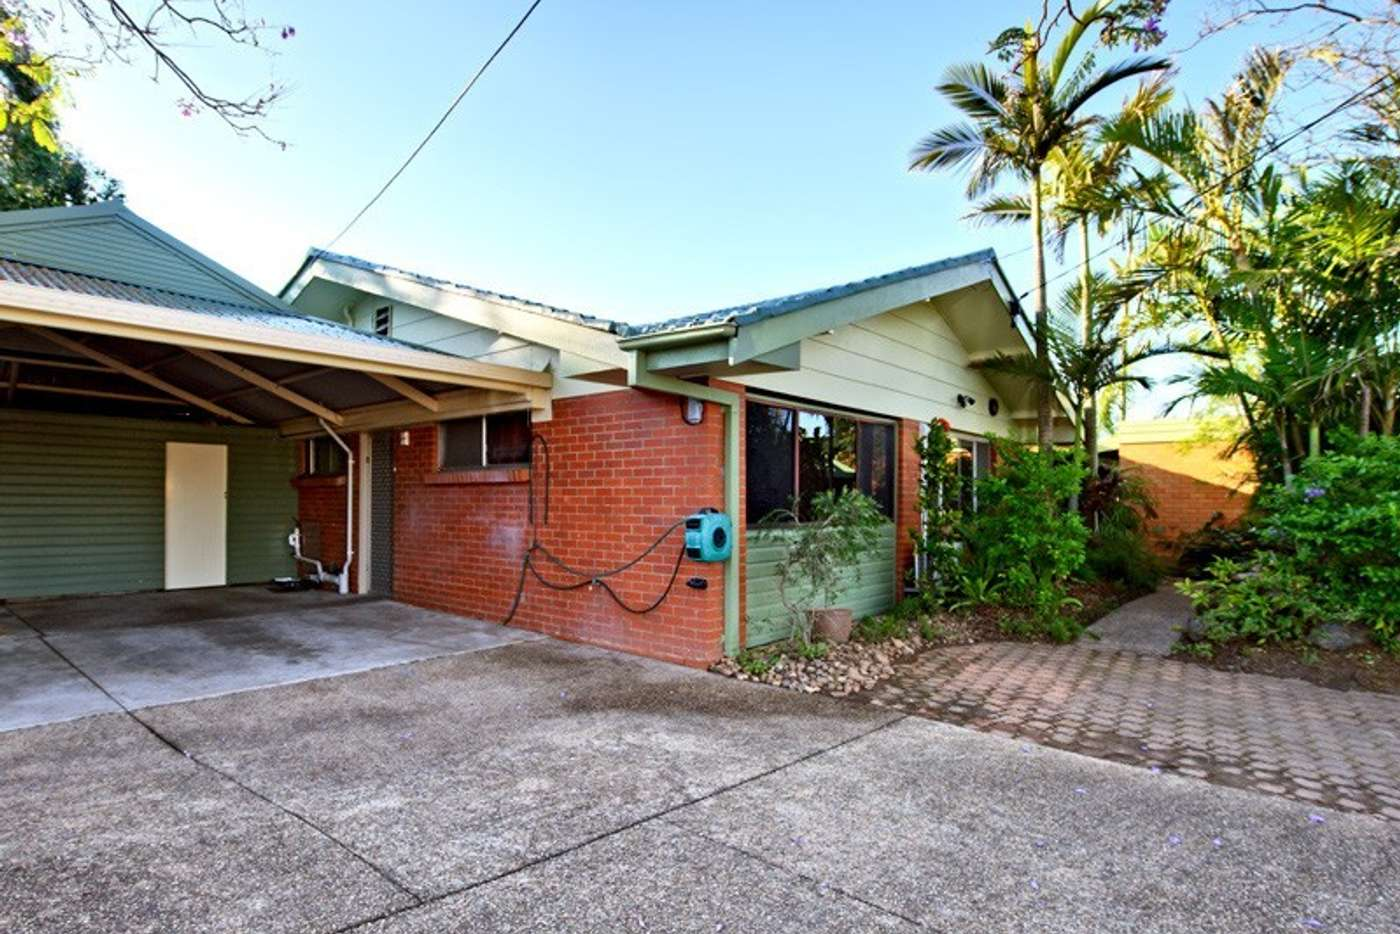 Main view of Homely house listing, 4 Sangster Street, Macgregor QLD 4109